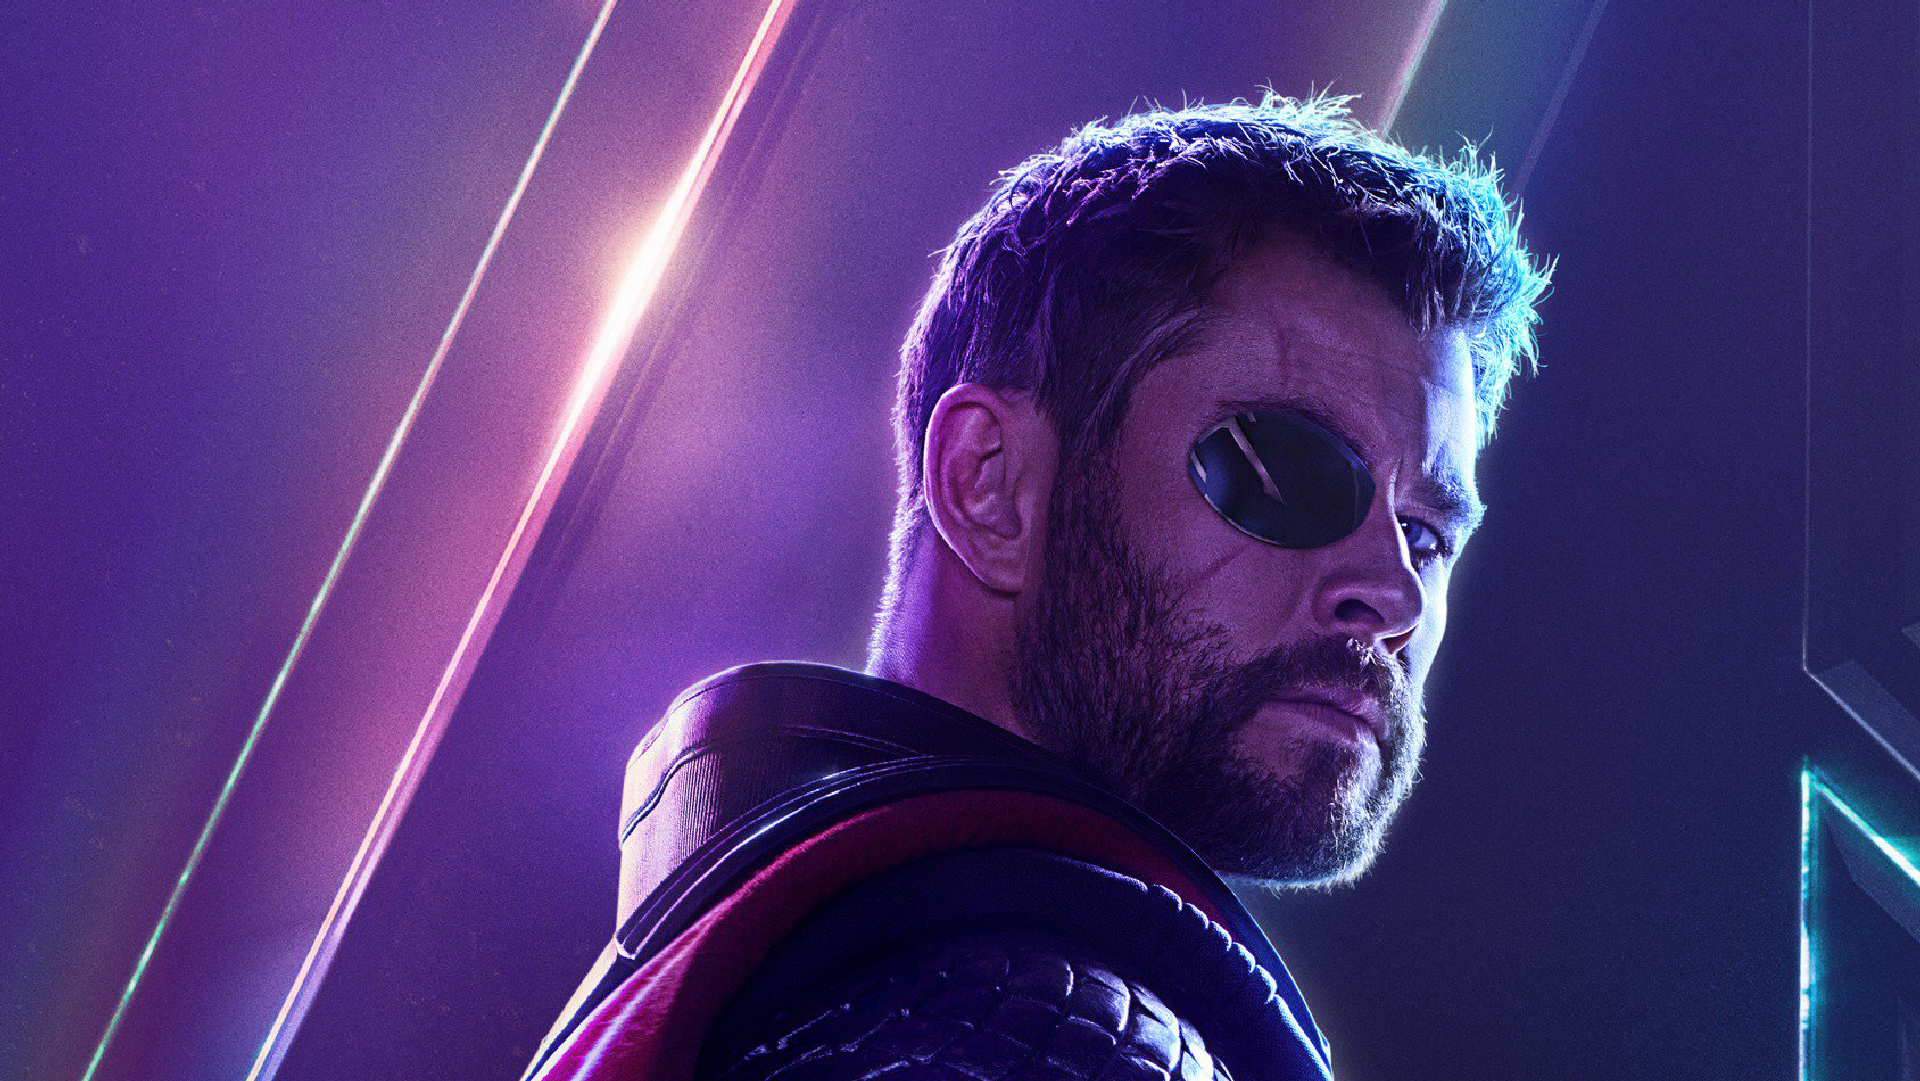 Thor In Avengers Infinity War New Poster